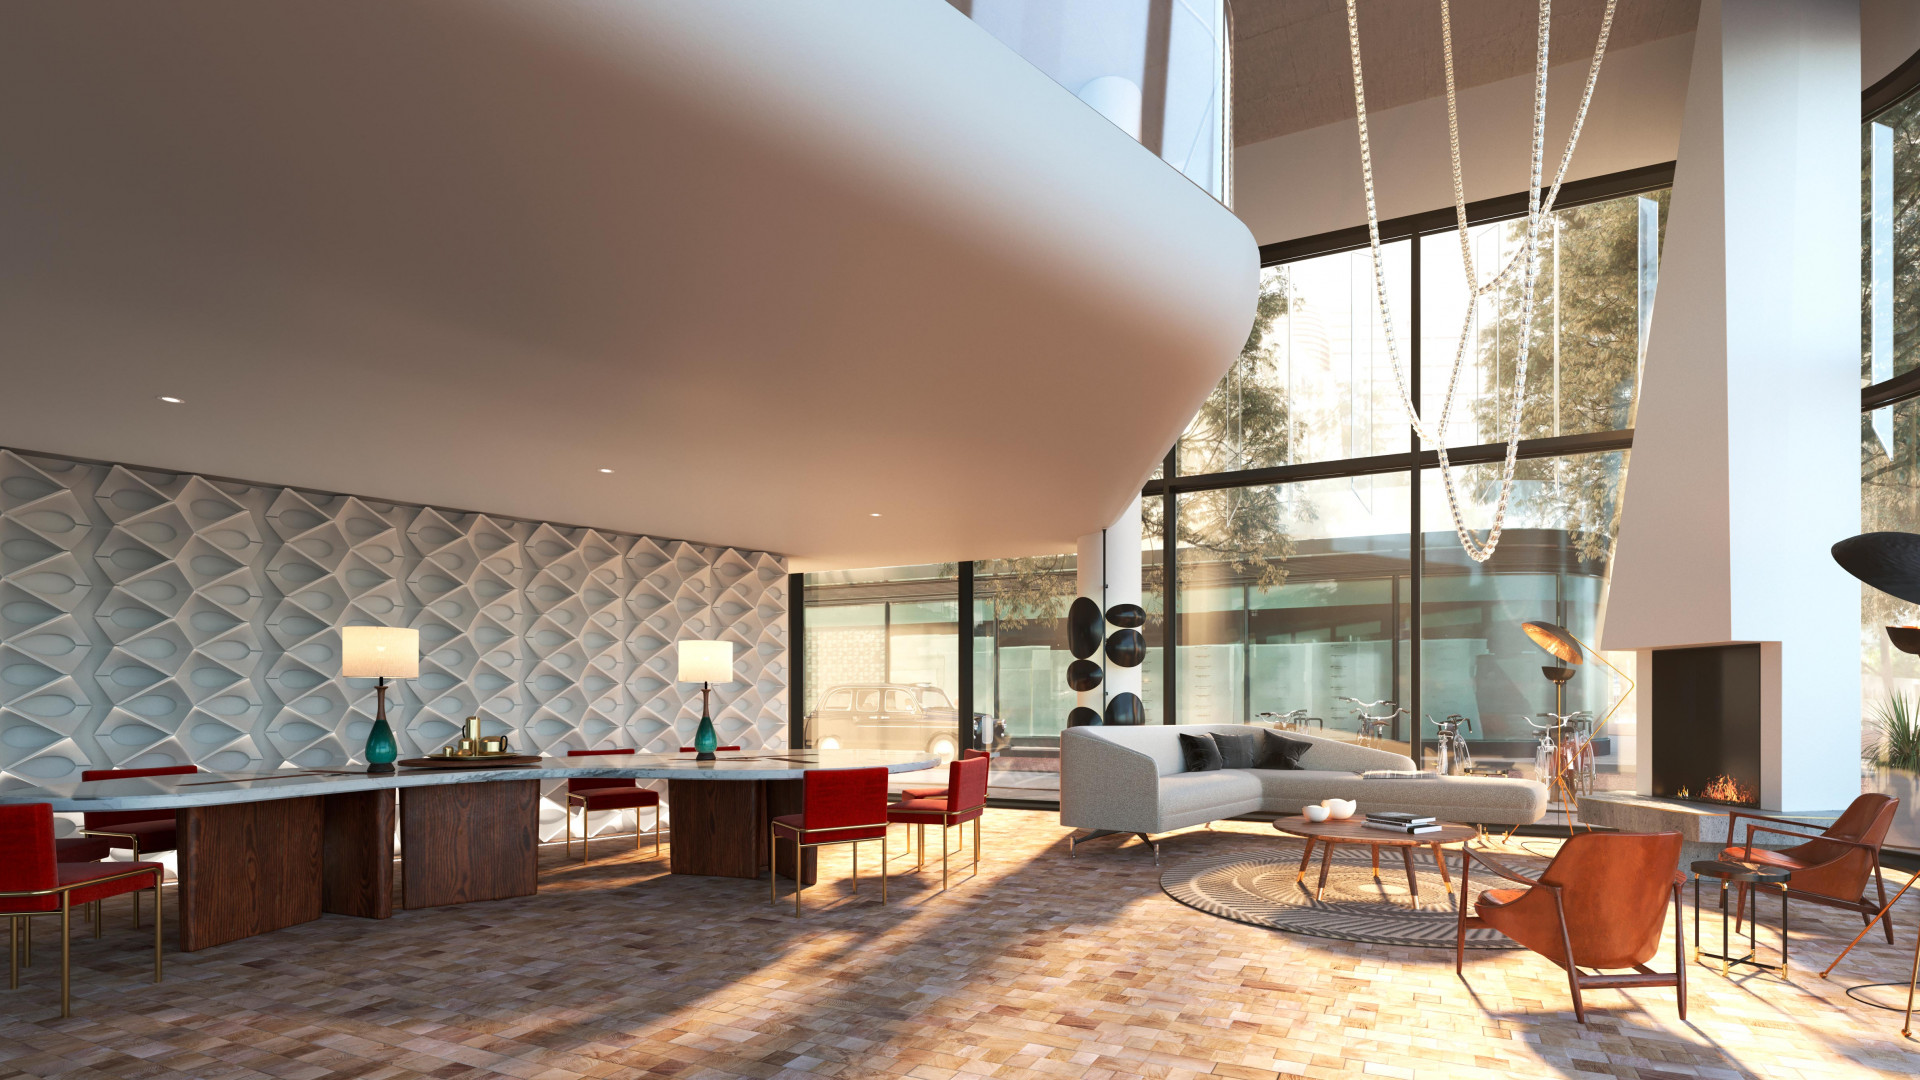 A rendering of the lobby area at the new Bankside hotel in Blackfriars